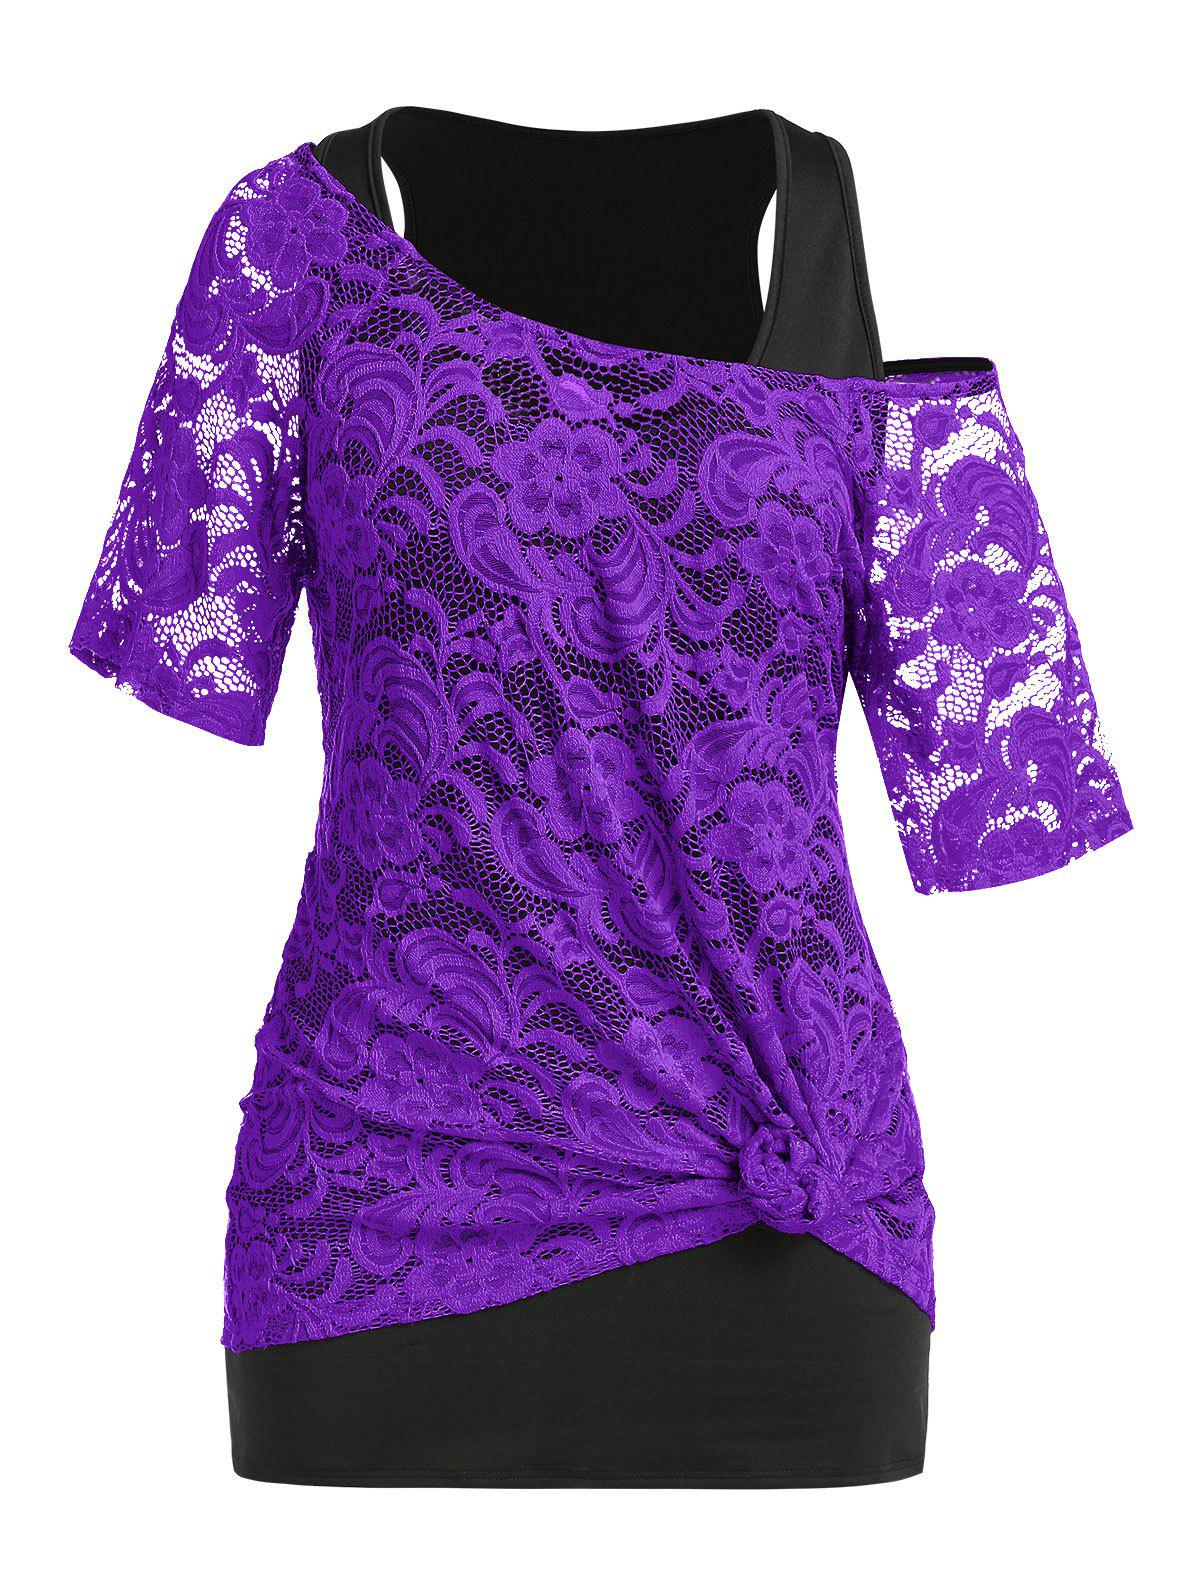 Plus Size Lace Sheer Knot T-shirt and Tank Top Set - PURPLE 2X